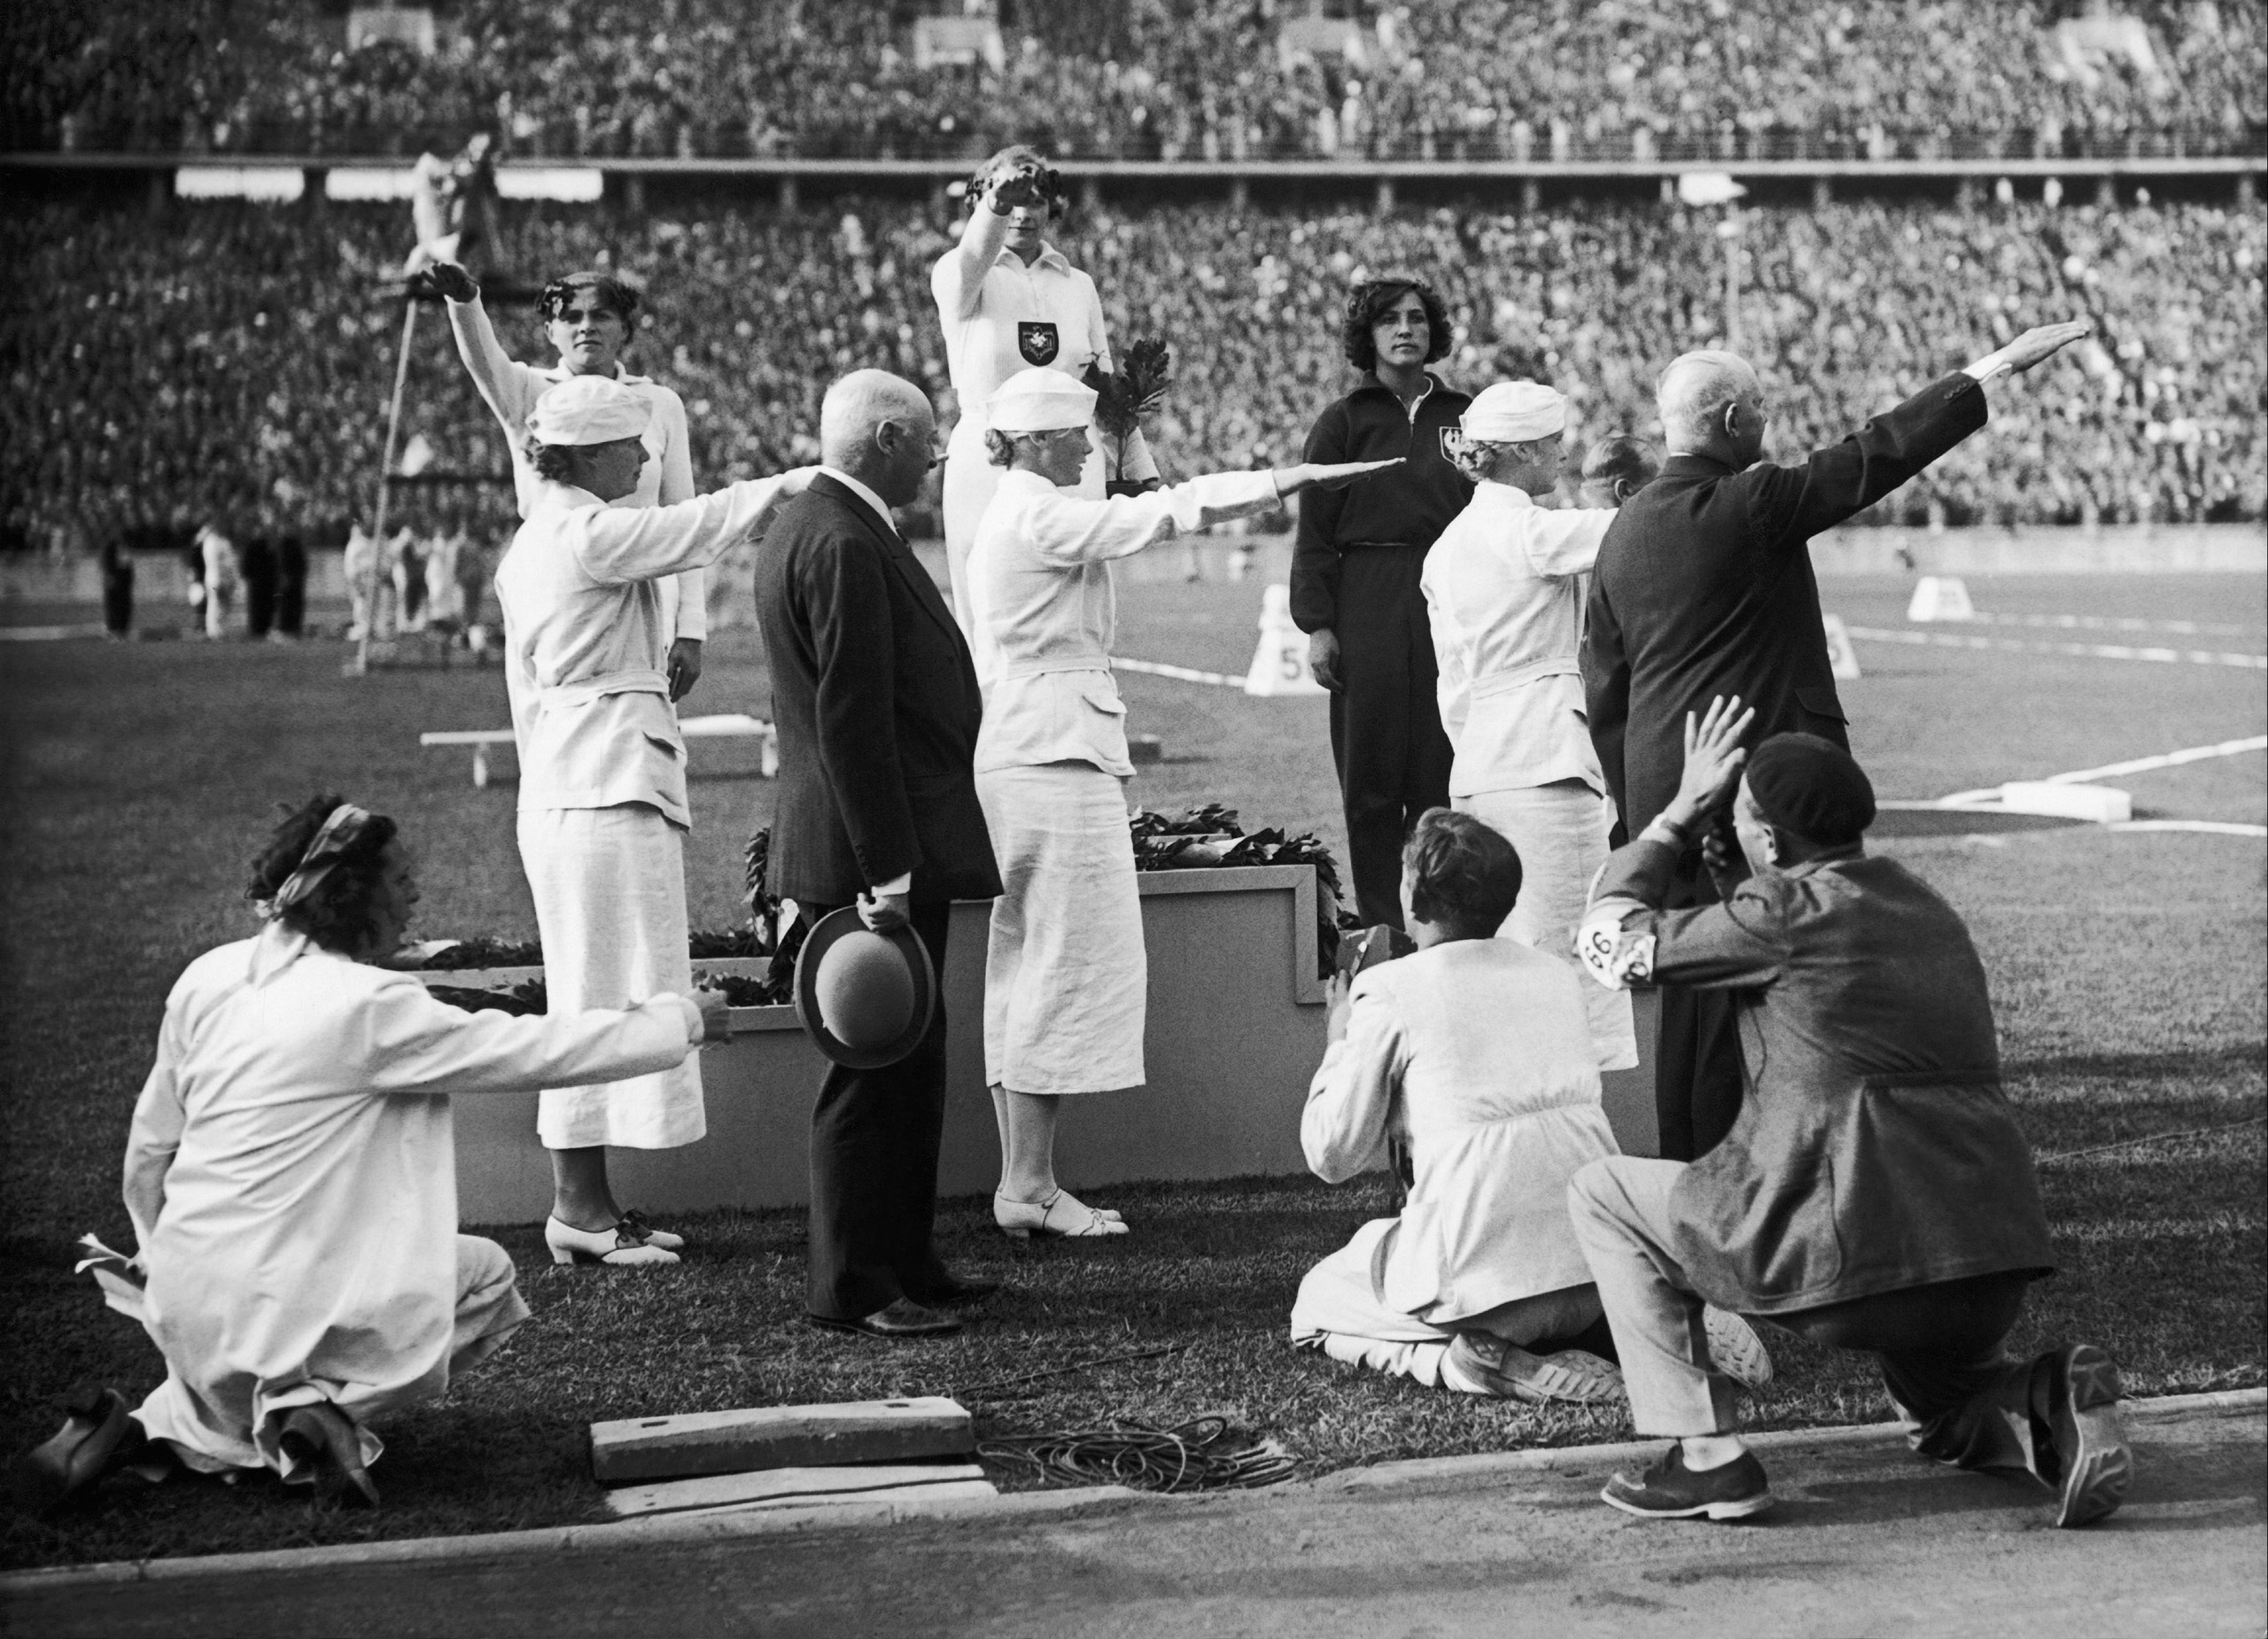 The German female javelin throwers Tilly Fleischer (Gold Medal) and Luis Kruger (Silver Medal) with Polish bronze-medalist Marja Kwasniewska, on the podium at the Olympic Games In Berlin on Aug. 2, 1936.